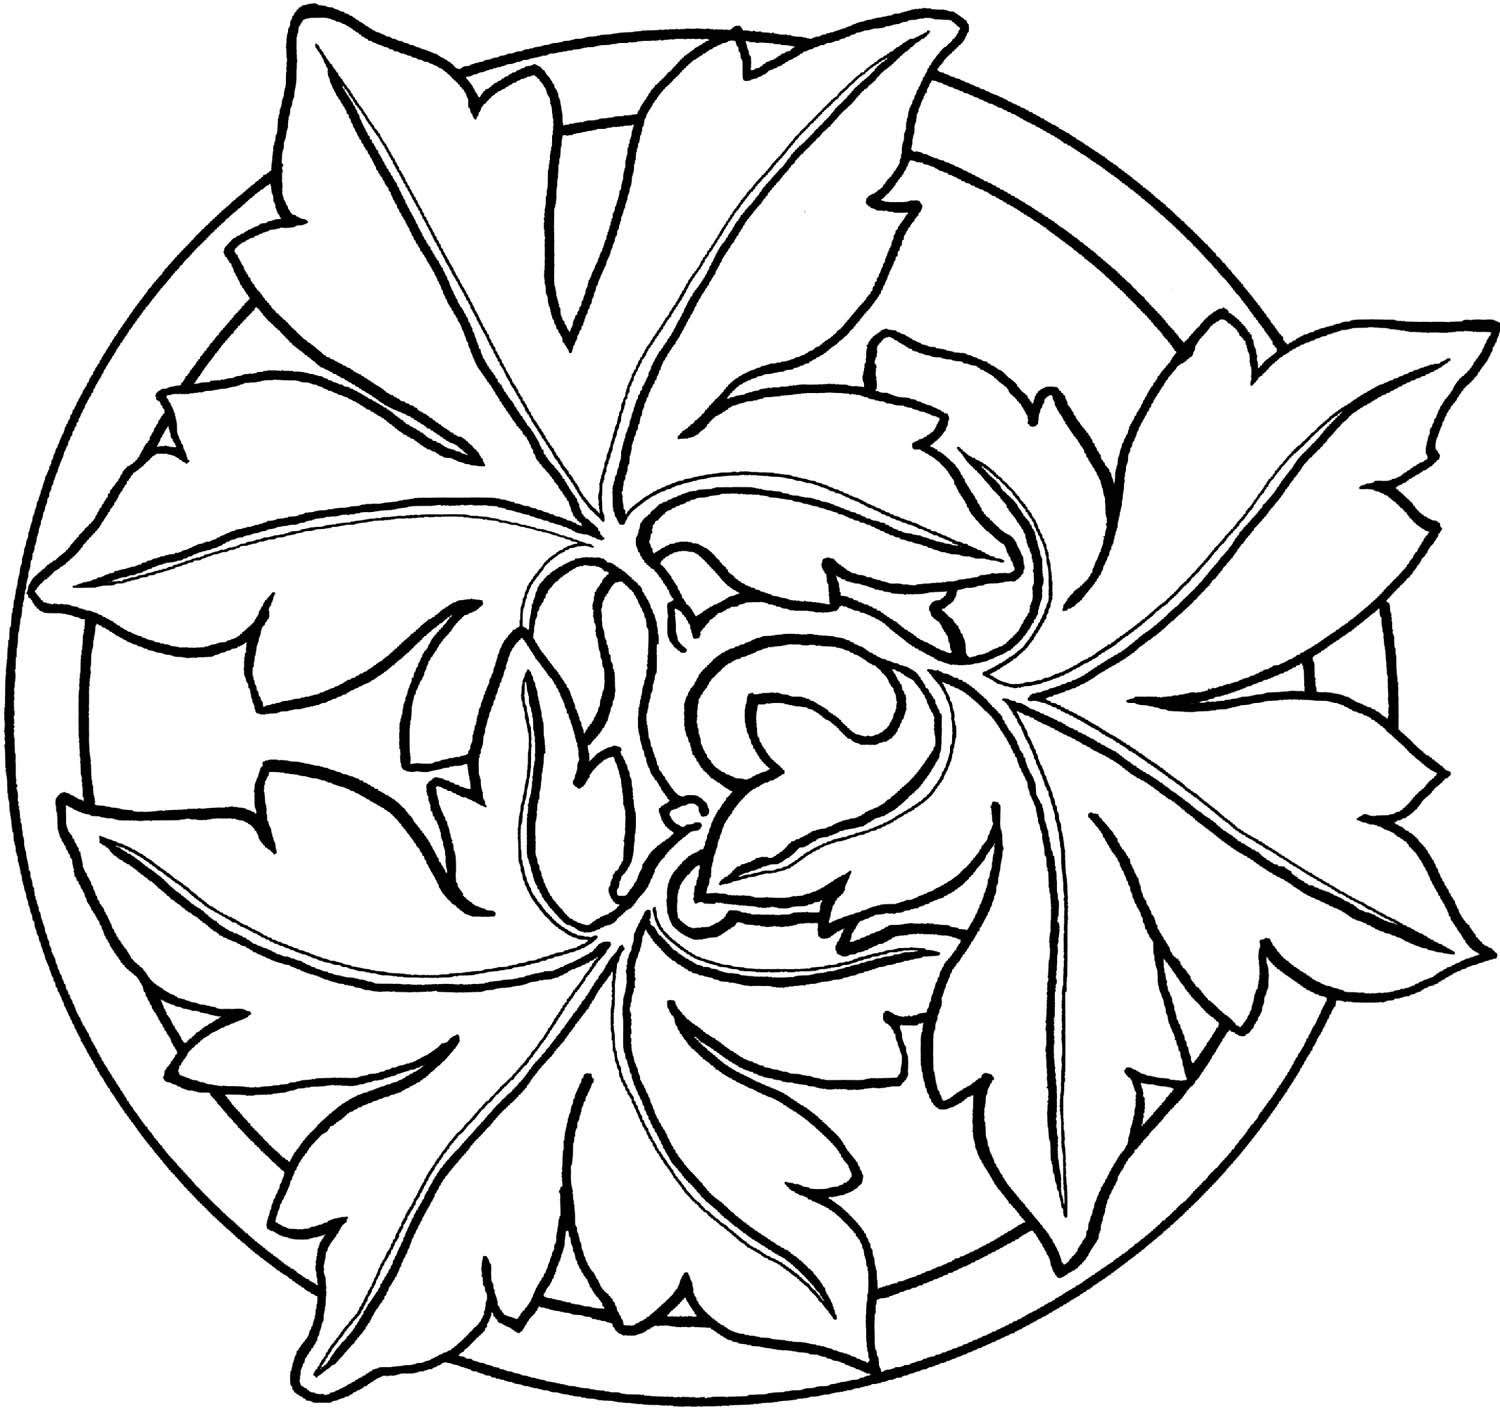 Glass Sticker patterns, dyes, coloring books, stencils